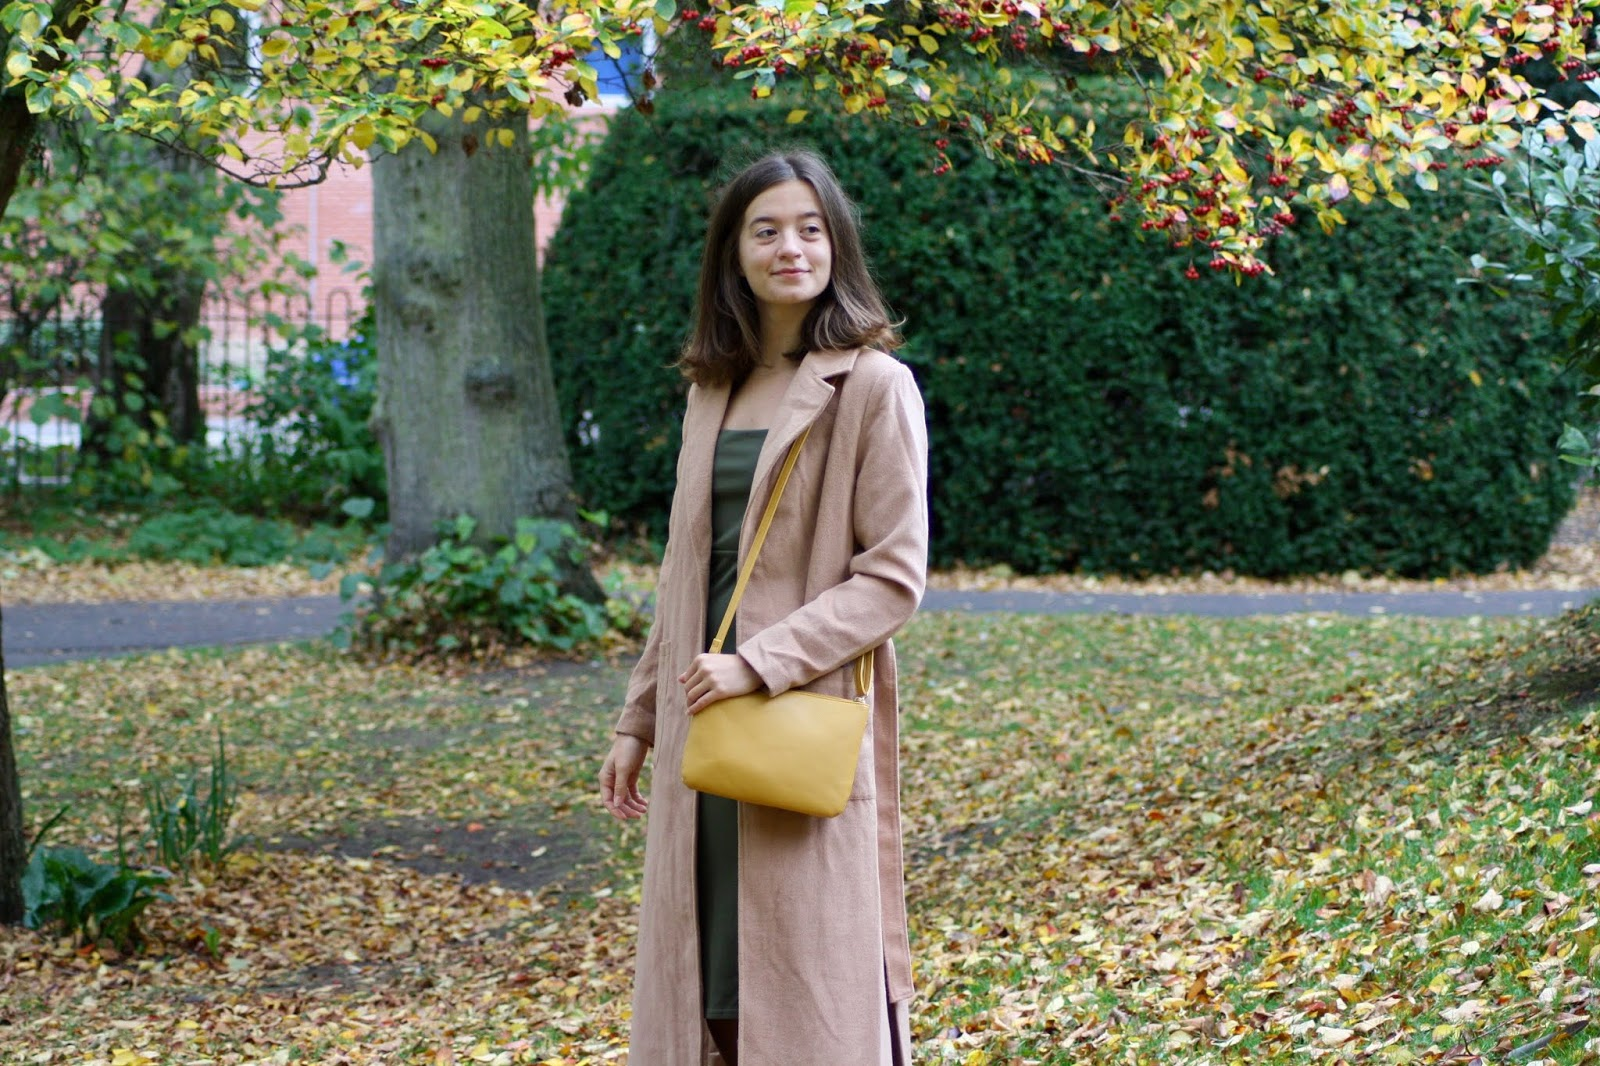 brunette woman standing amongst autumn trees, wearing brown jacket and khaki dress